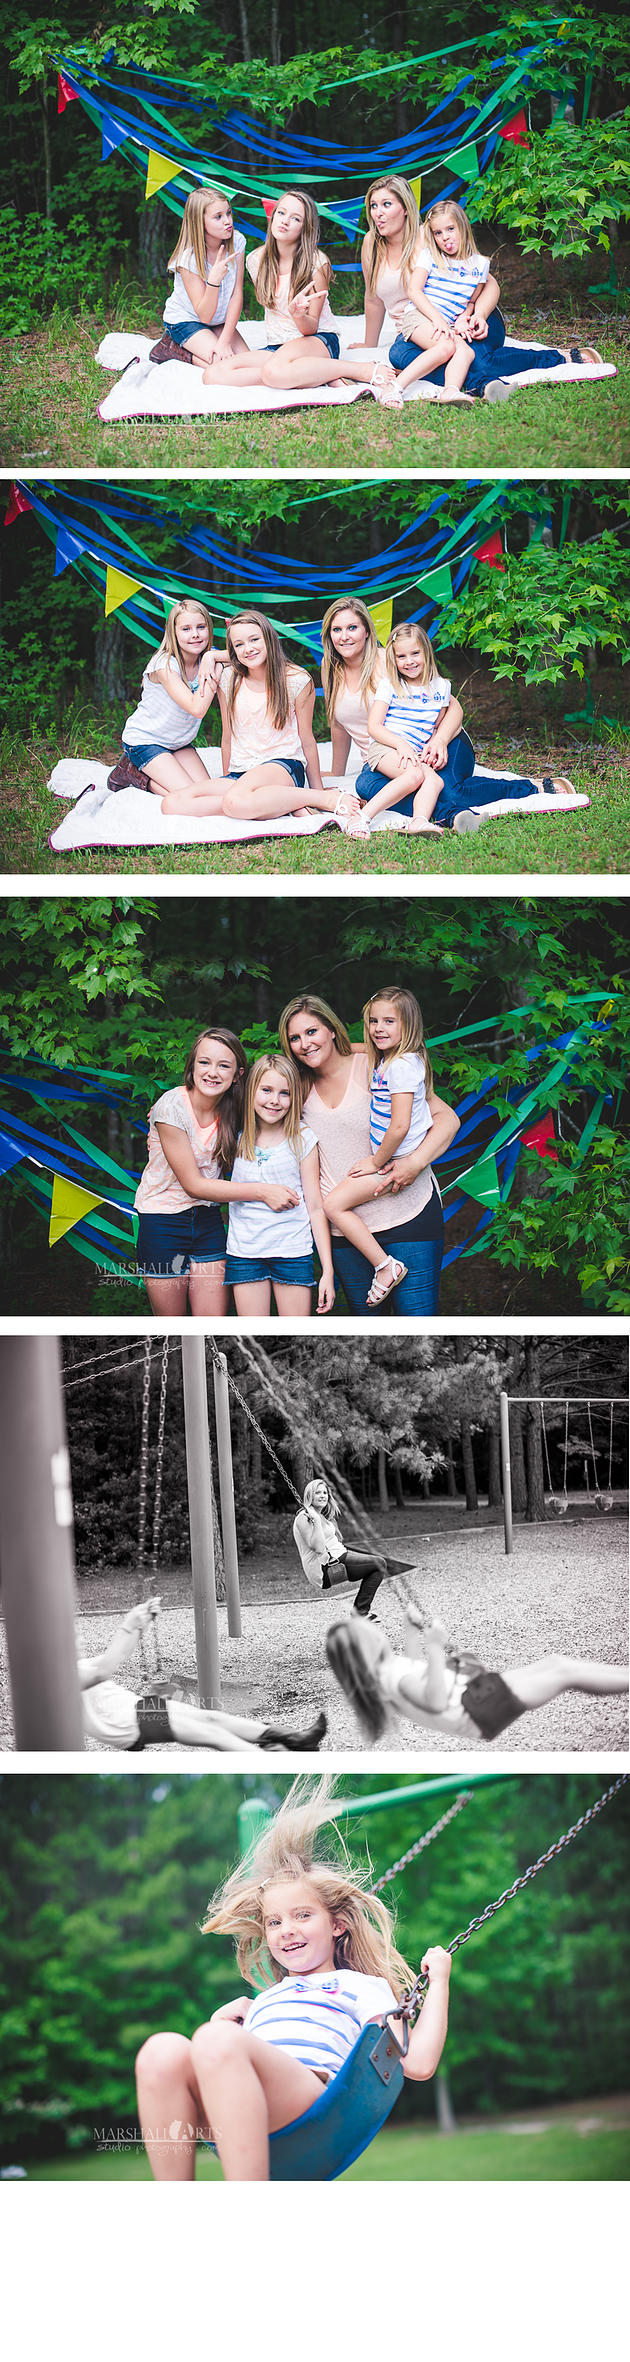 Marshall Arts Studios | Girls Day Out nikond750 nikkor 85 1.8mm nikkor 50mm 1.4 natural light chesapeake, oak grove lake park fun lifestyle